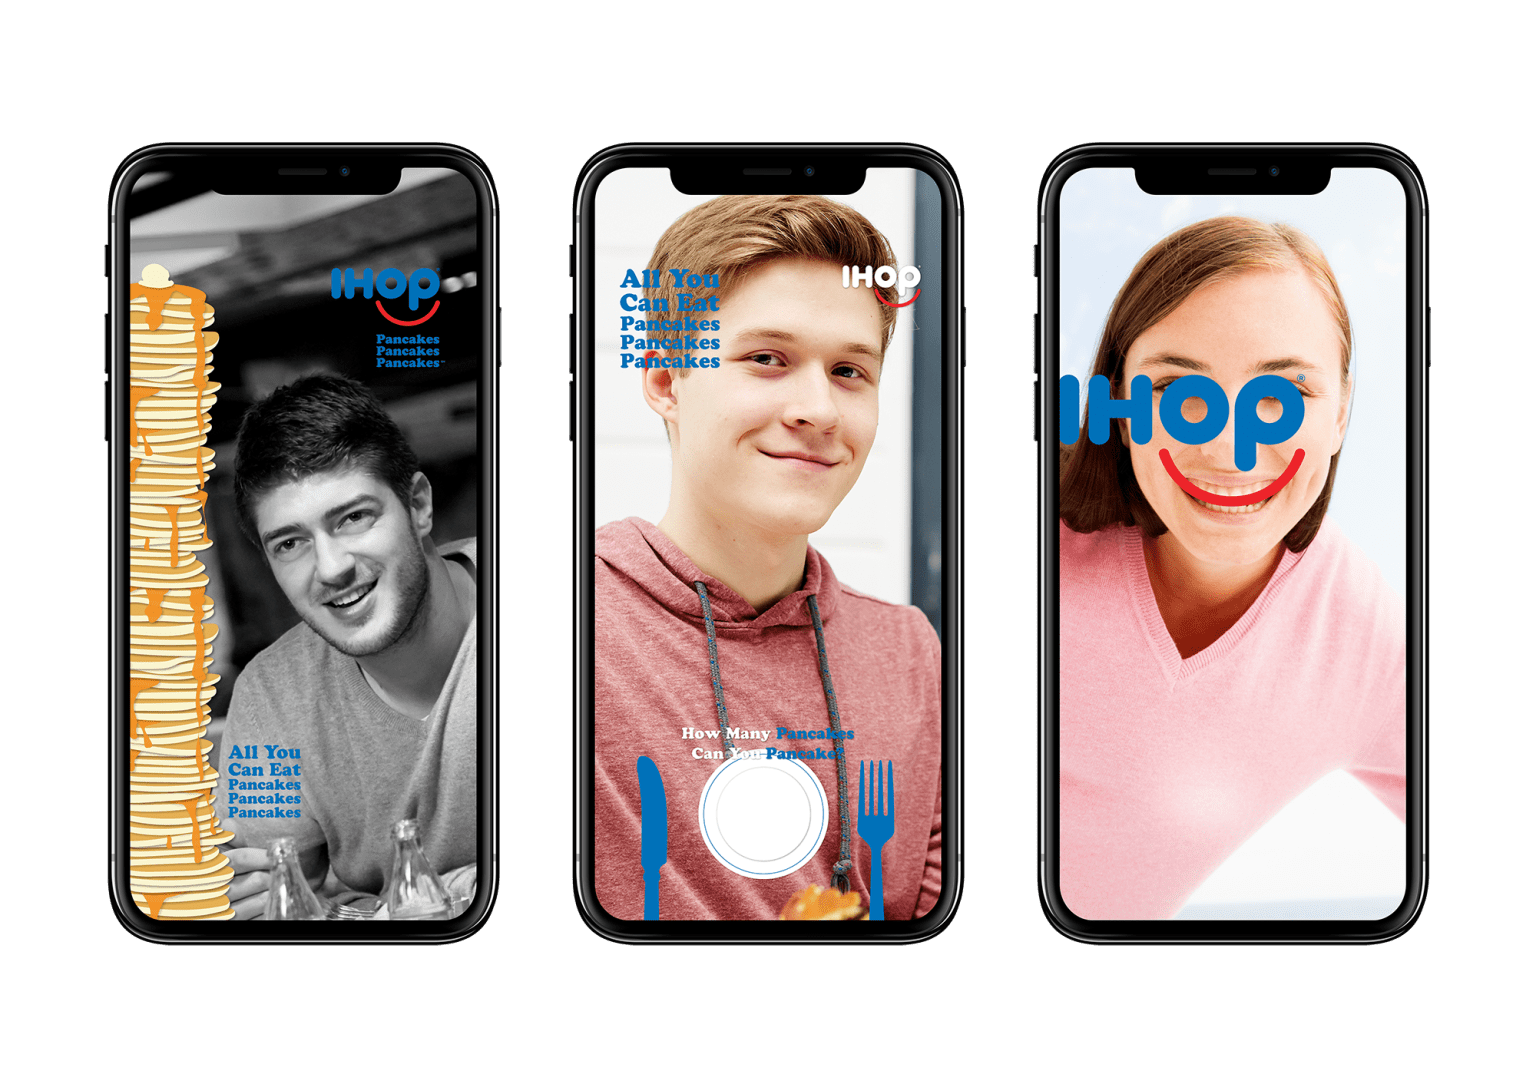 Snap Inc Geofilters